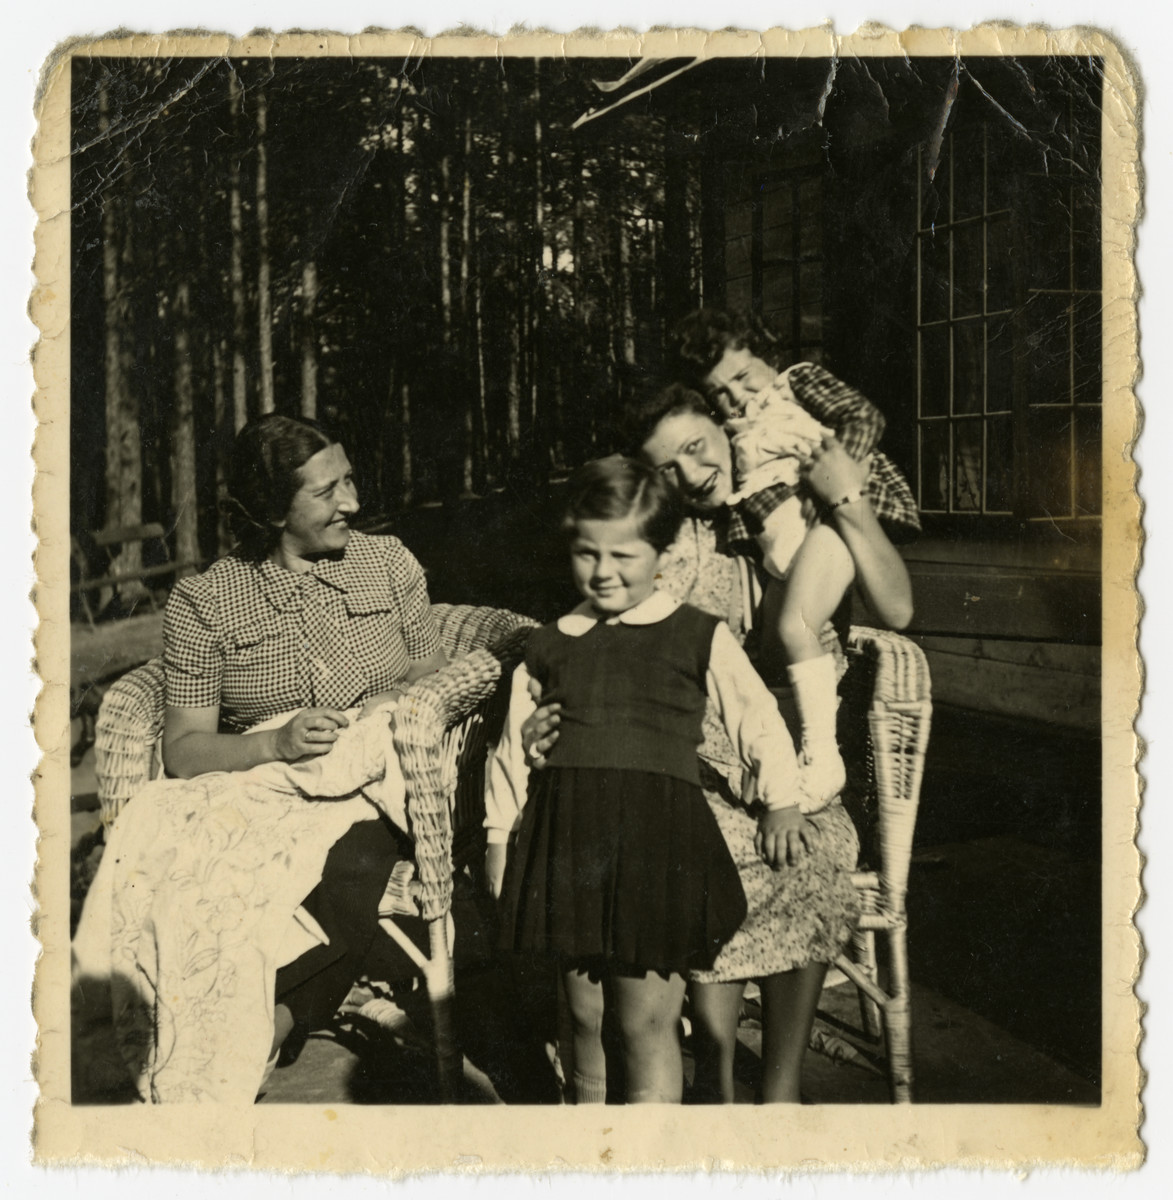 Rosian Bagriansky poses outside with her aunt Lyda Bagriansky Geist and family friends of the family [probably Rosa Govshovitz and her daughter] in either Kulautova or Kacergine Lithuania.